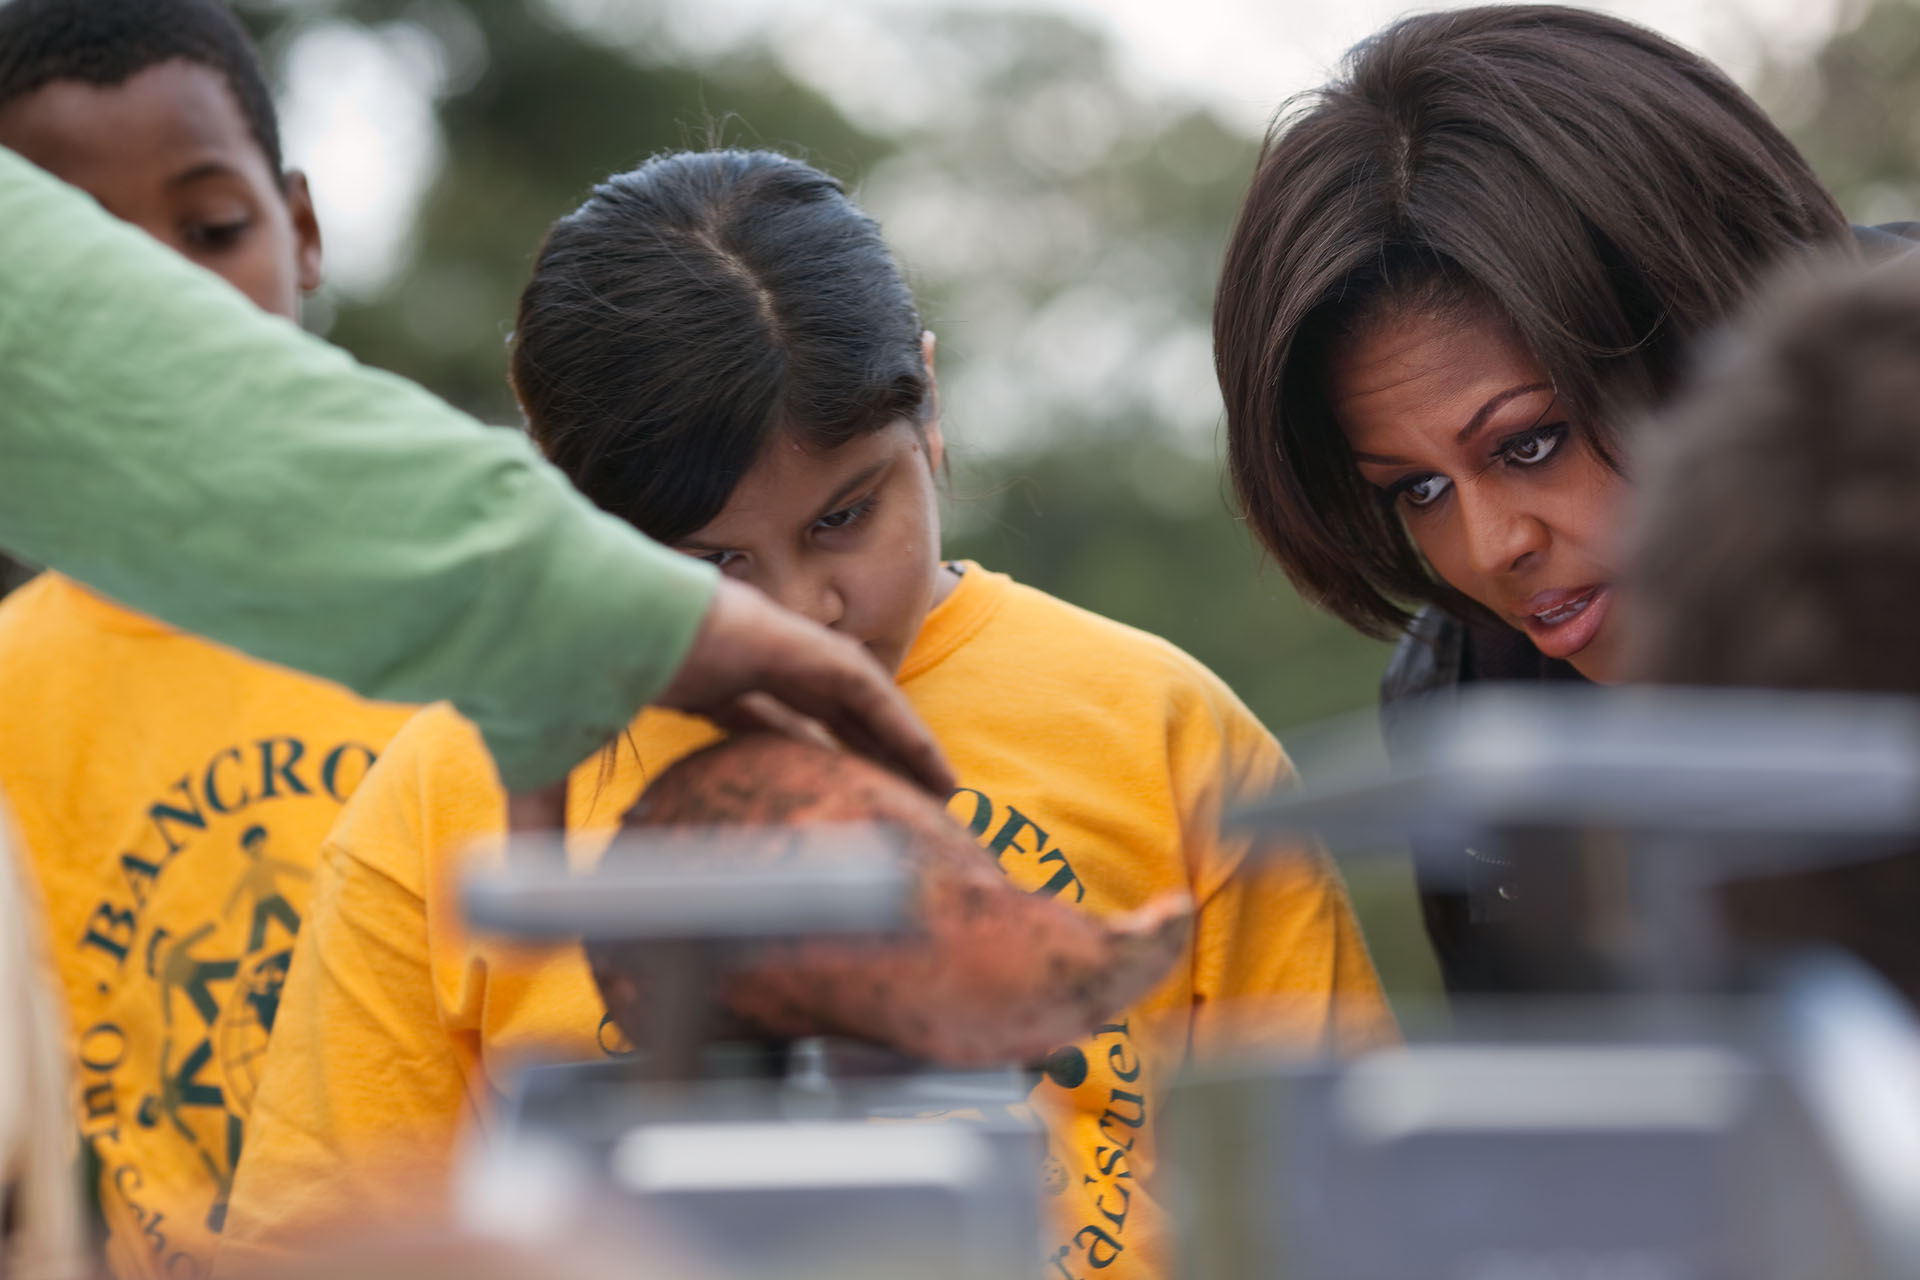 The First Lady and a Young Student Look On as the Harvested Vegetables are Weighed